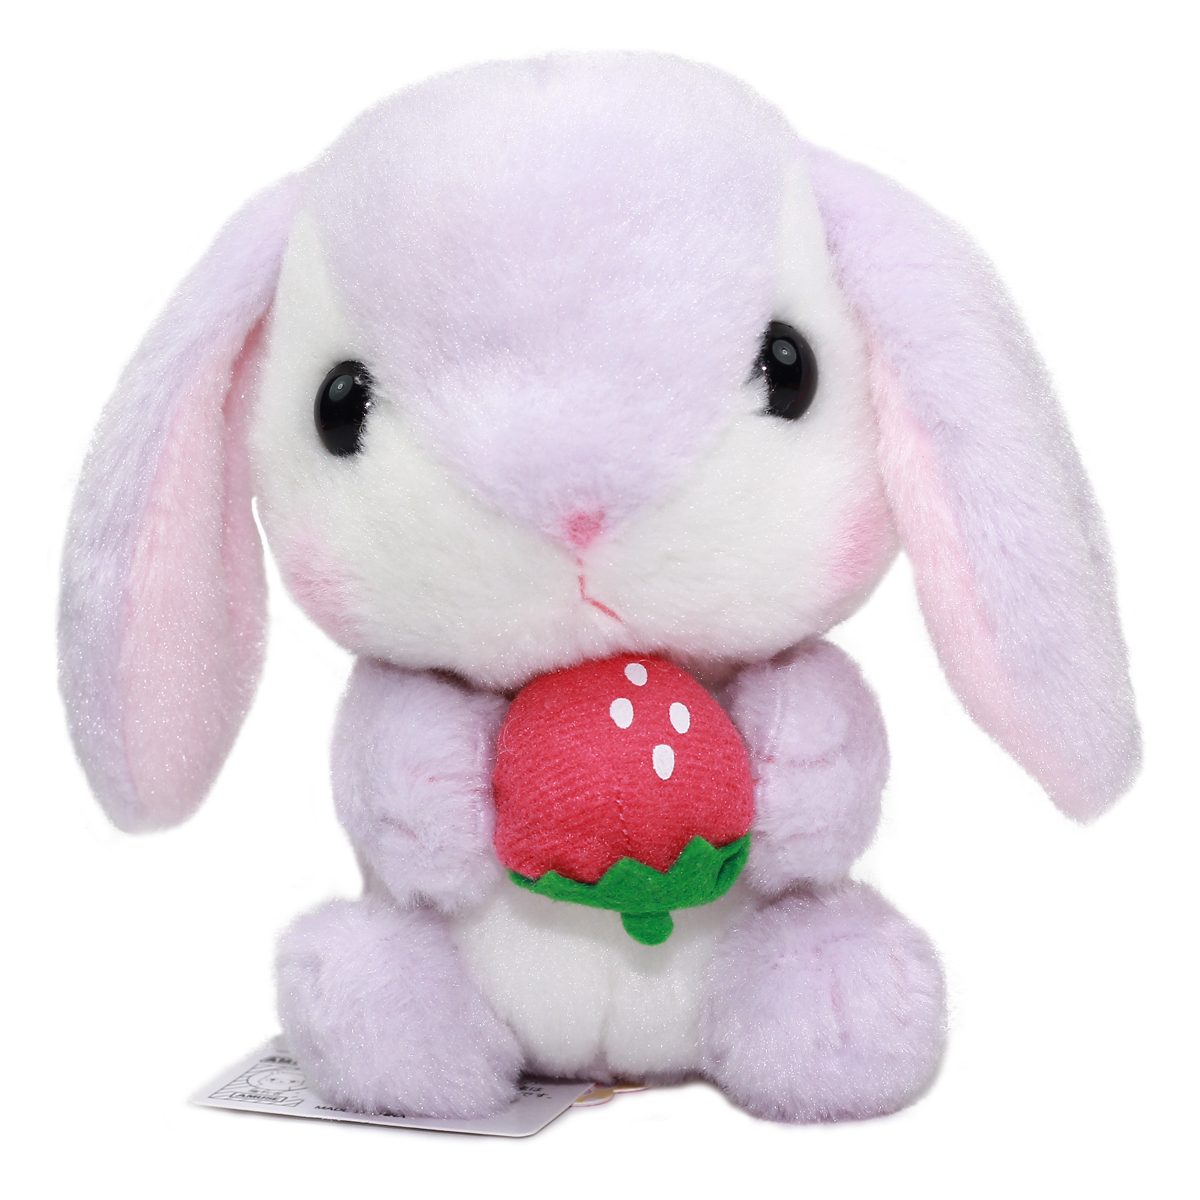 Amuse Bunny Plush Doll Sweet Garden Collection Cute Stuffed Animal Toy Purple/White 6 Inches